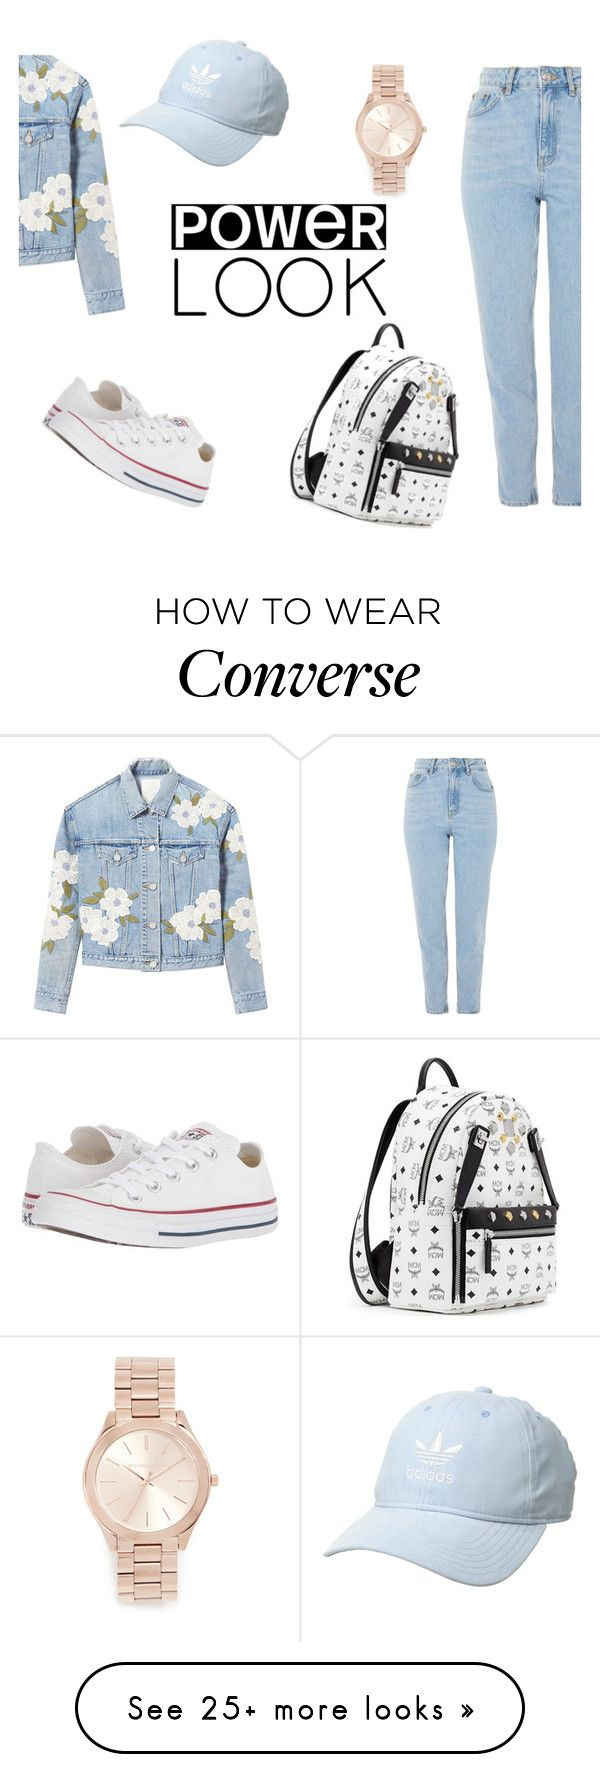 """""""Jeans blue outfit"""" by katty6872 on Polyvore featuring Rebecca Taylor, Topshop, Converse, MCM, adidas Originals and Michael Kors"""